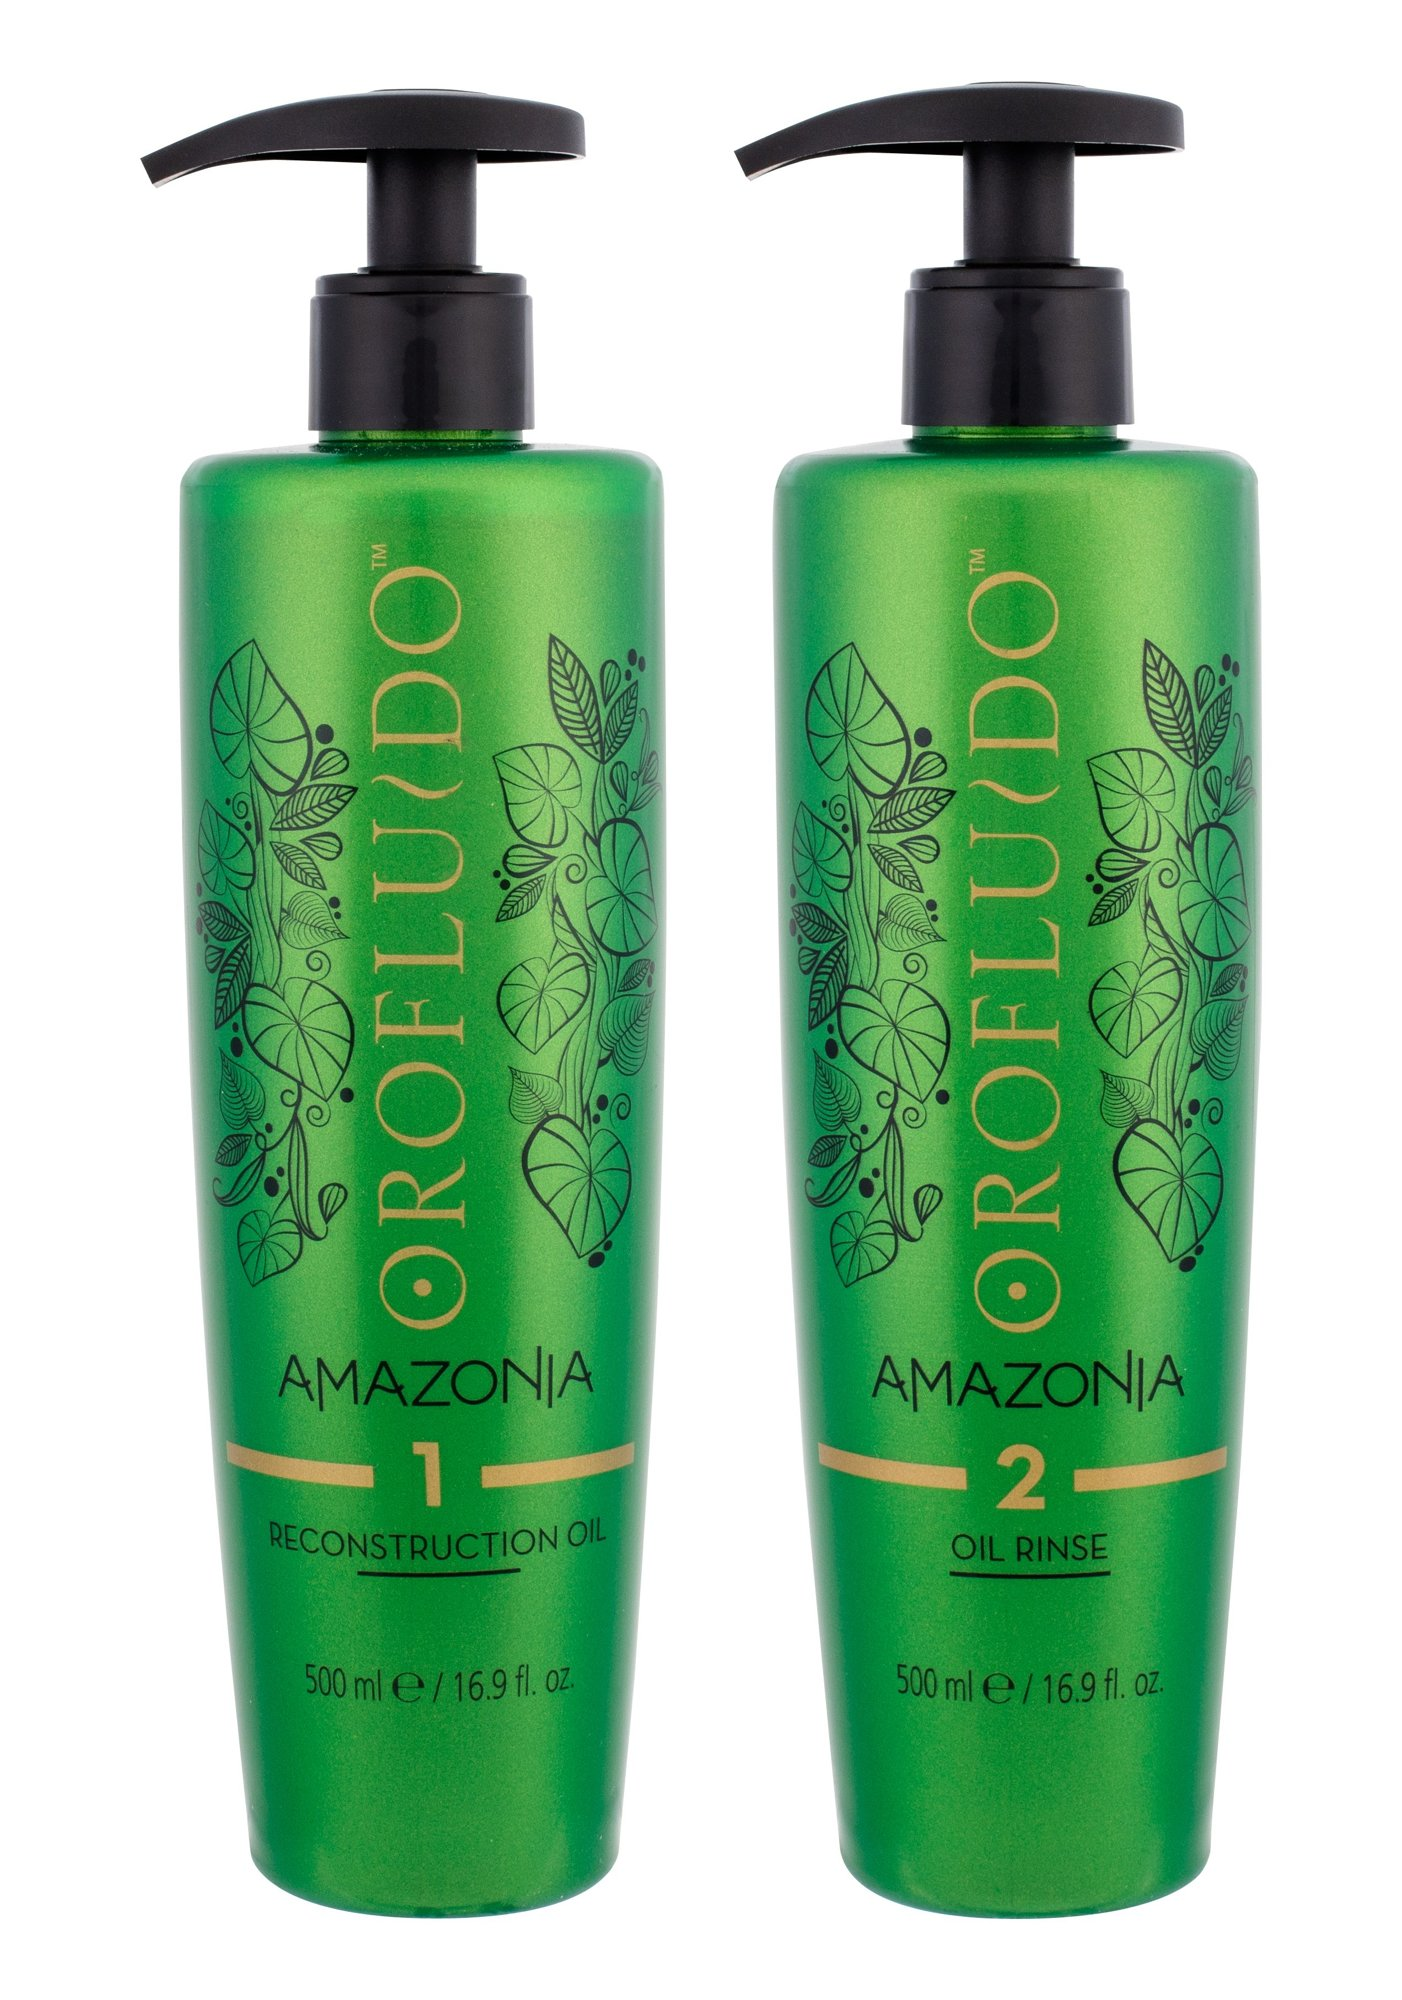 Orofluido Amazonia Cosmetic 500ml